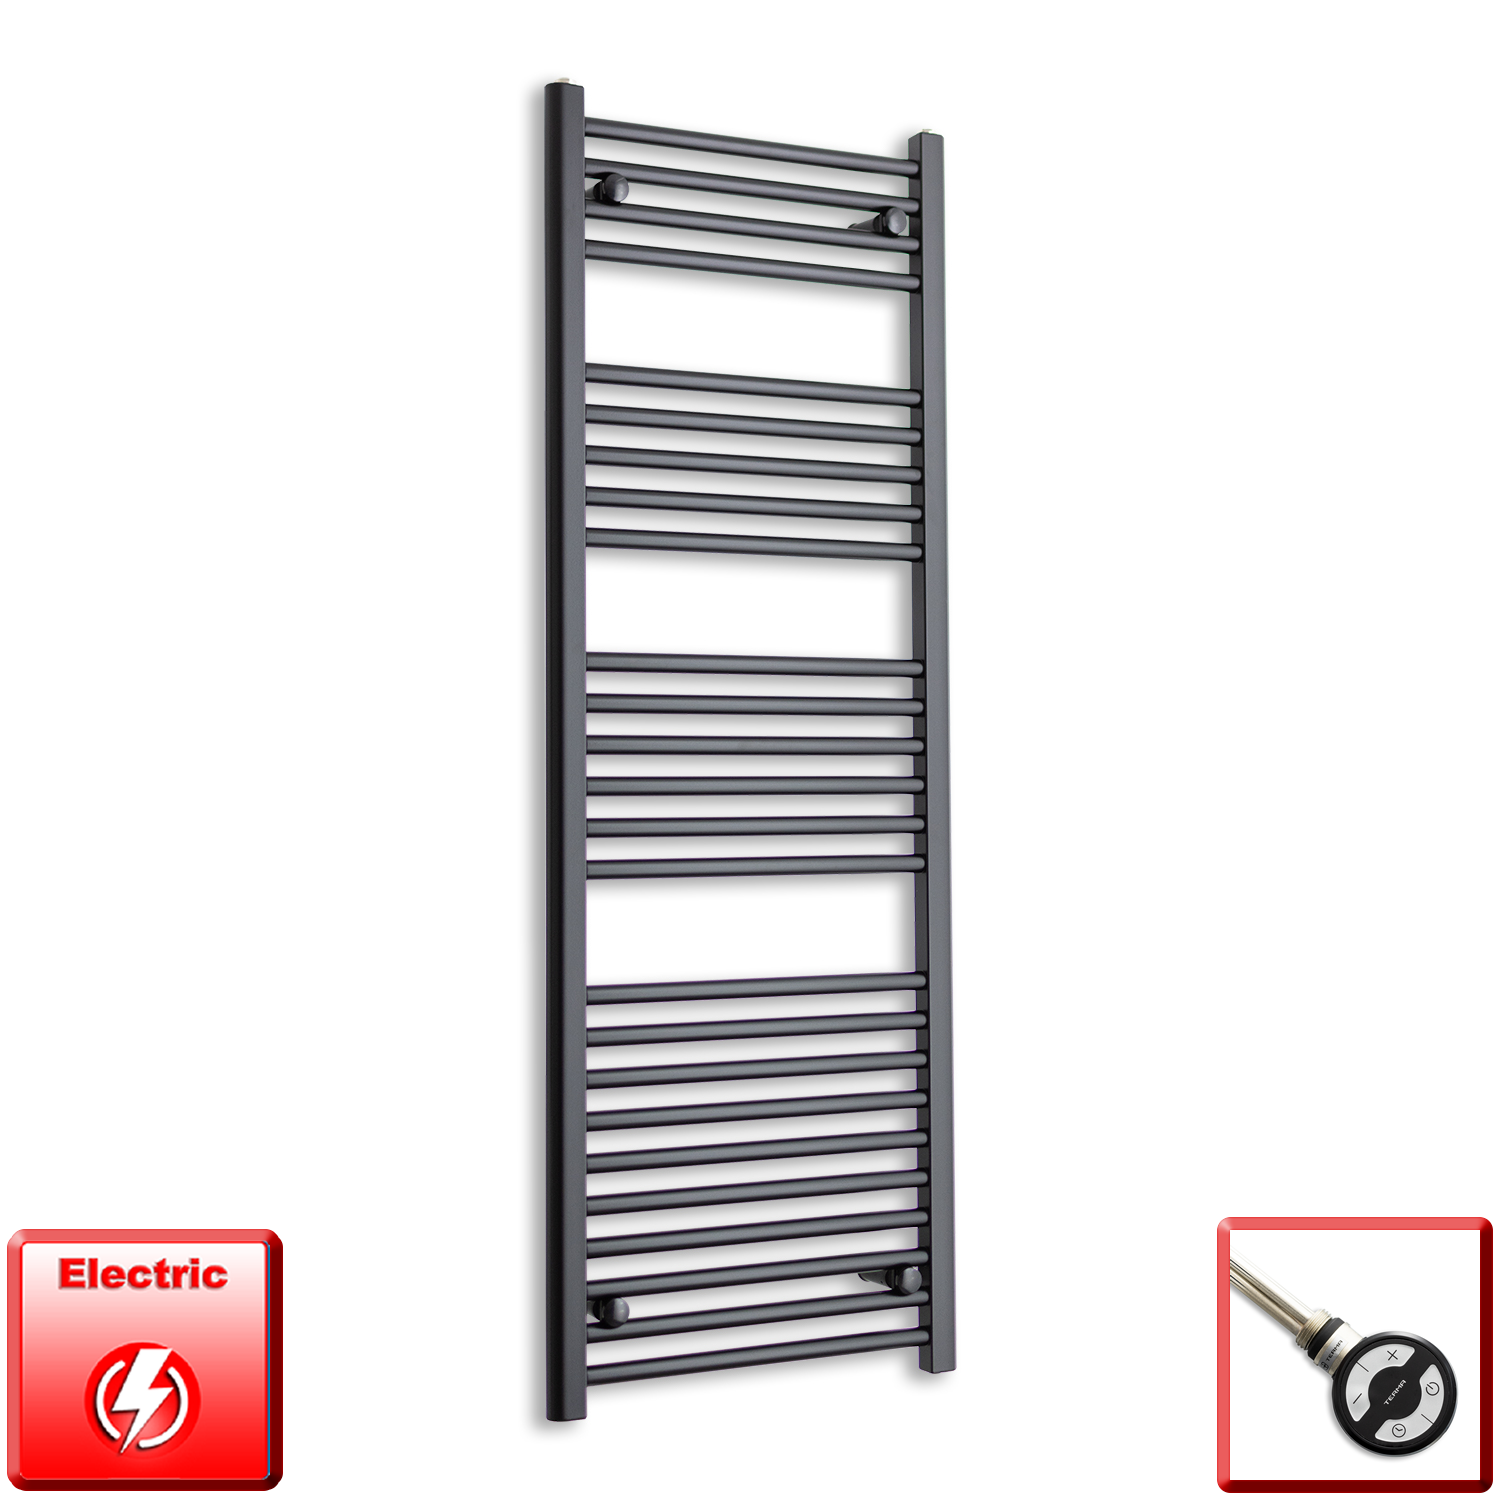 450mm Wide 1400mm High Flat Black Pre-Filled Electric Heated Towel Rail Radiator HTR,MOA Thermostatic Element